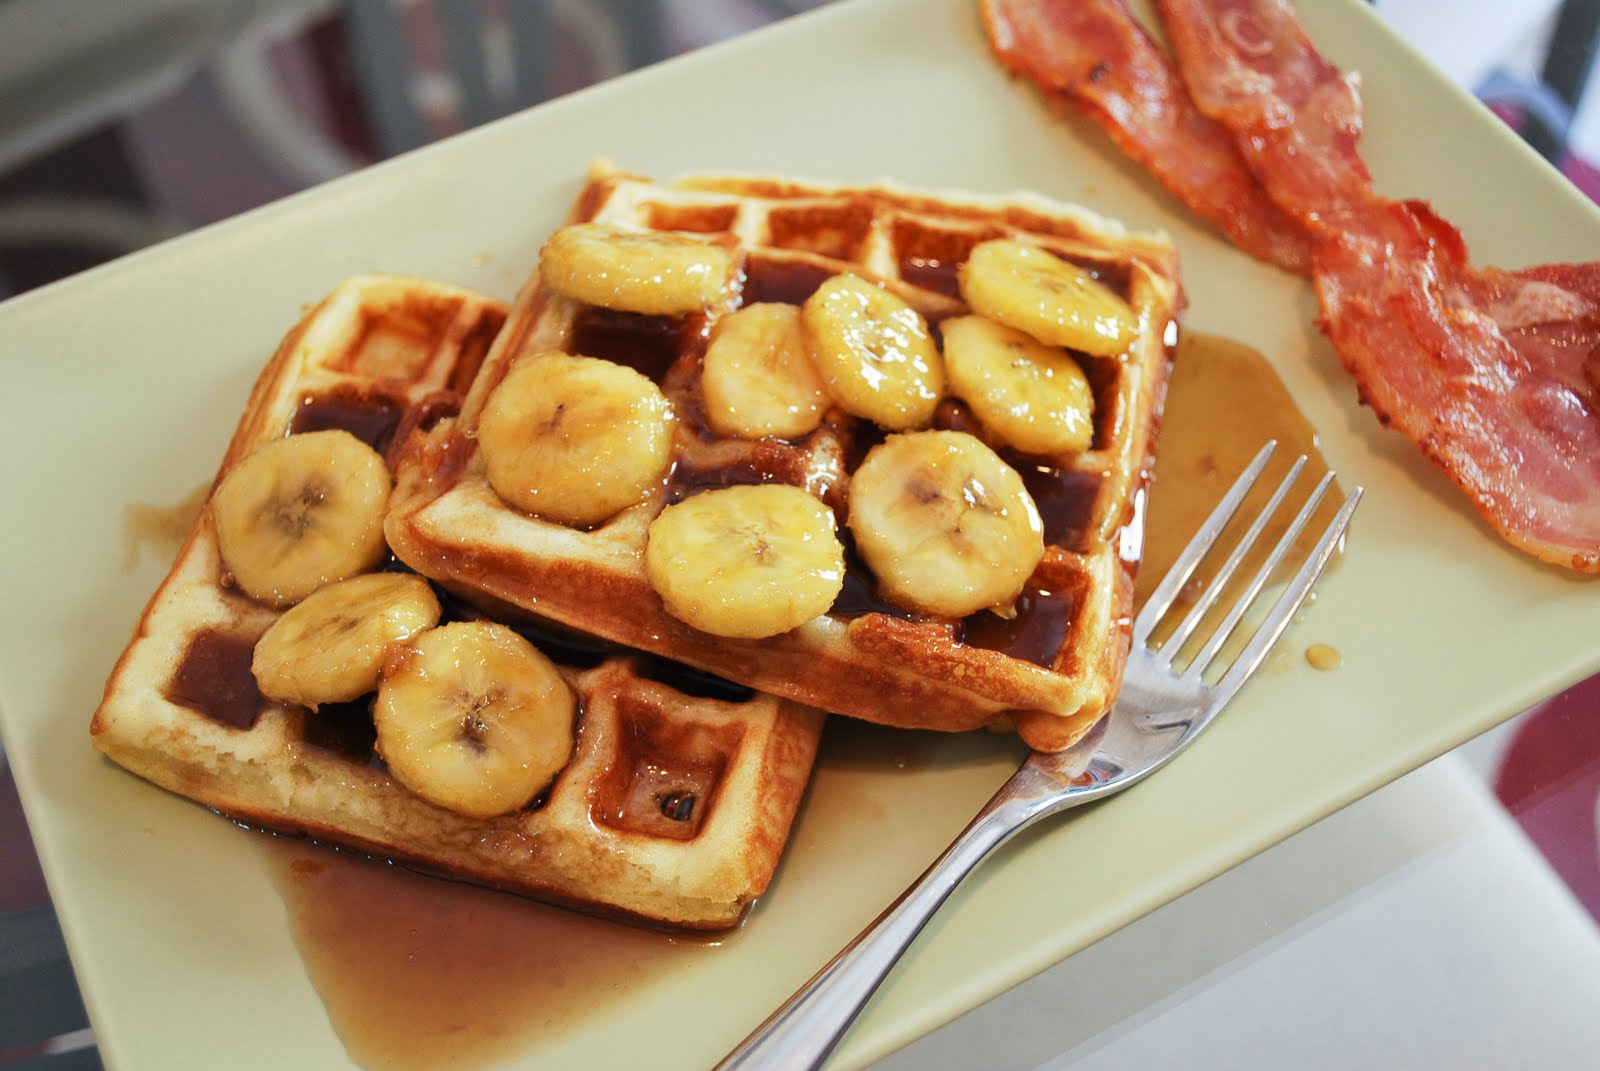 ... Pickles and Ice Cream: Raised Waffles with Warm Brown Sugar Bananas